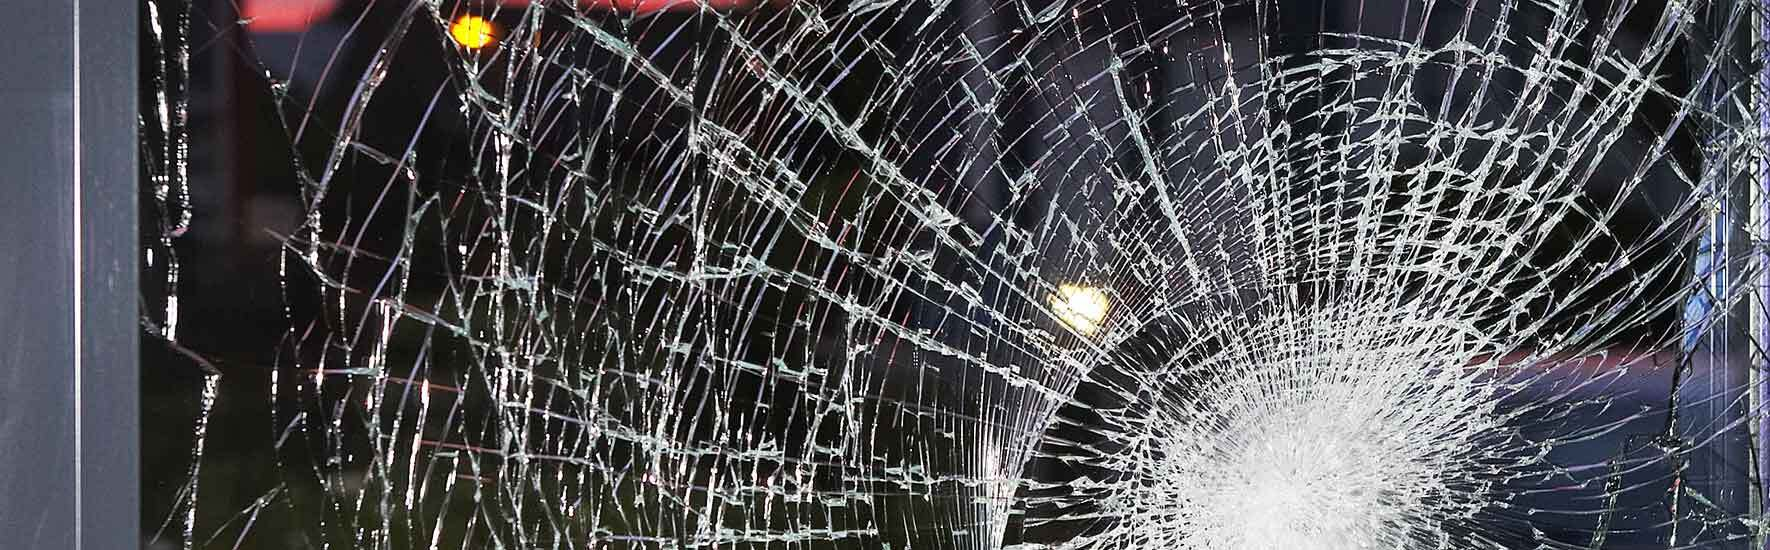 Don't Let Spontaneous Glass Breakage Harm Someone In Your Facility